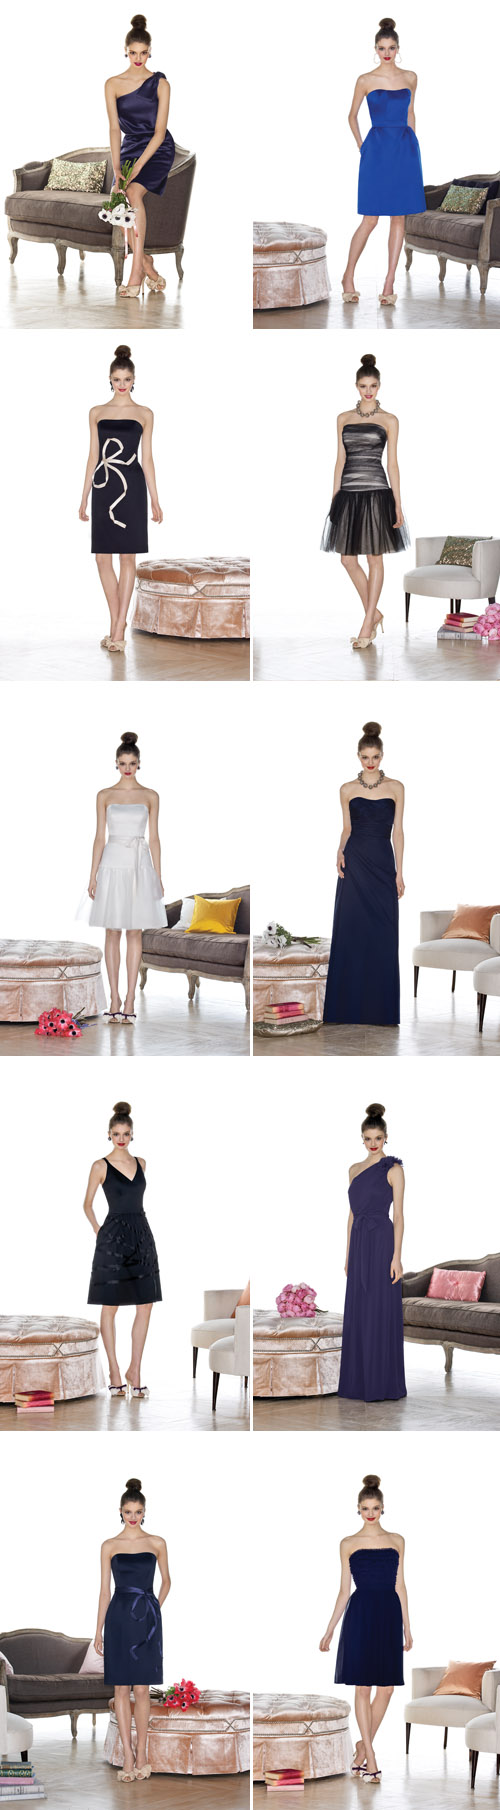 colorful cynthia rowley bridesmaids dresses from the dessy group